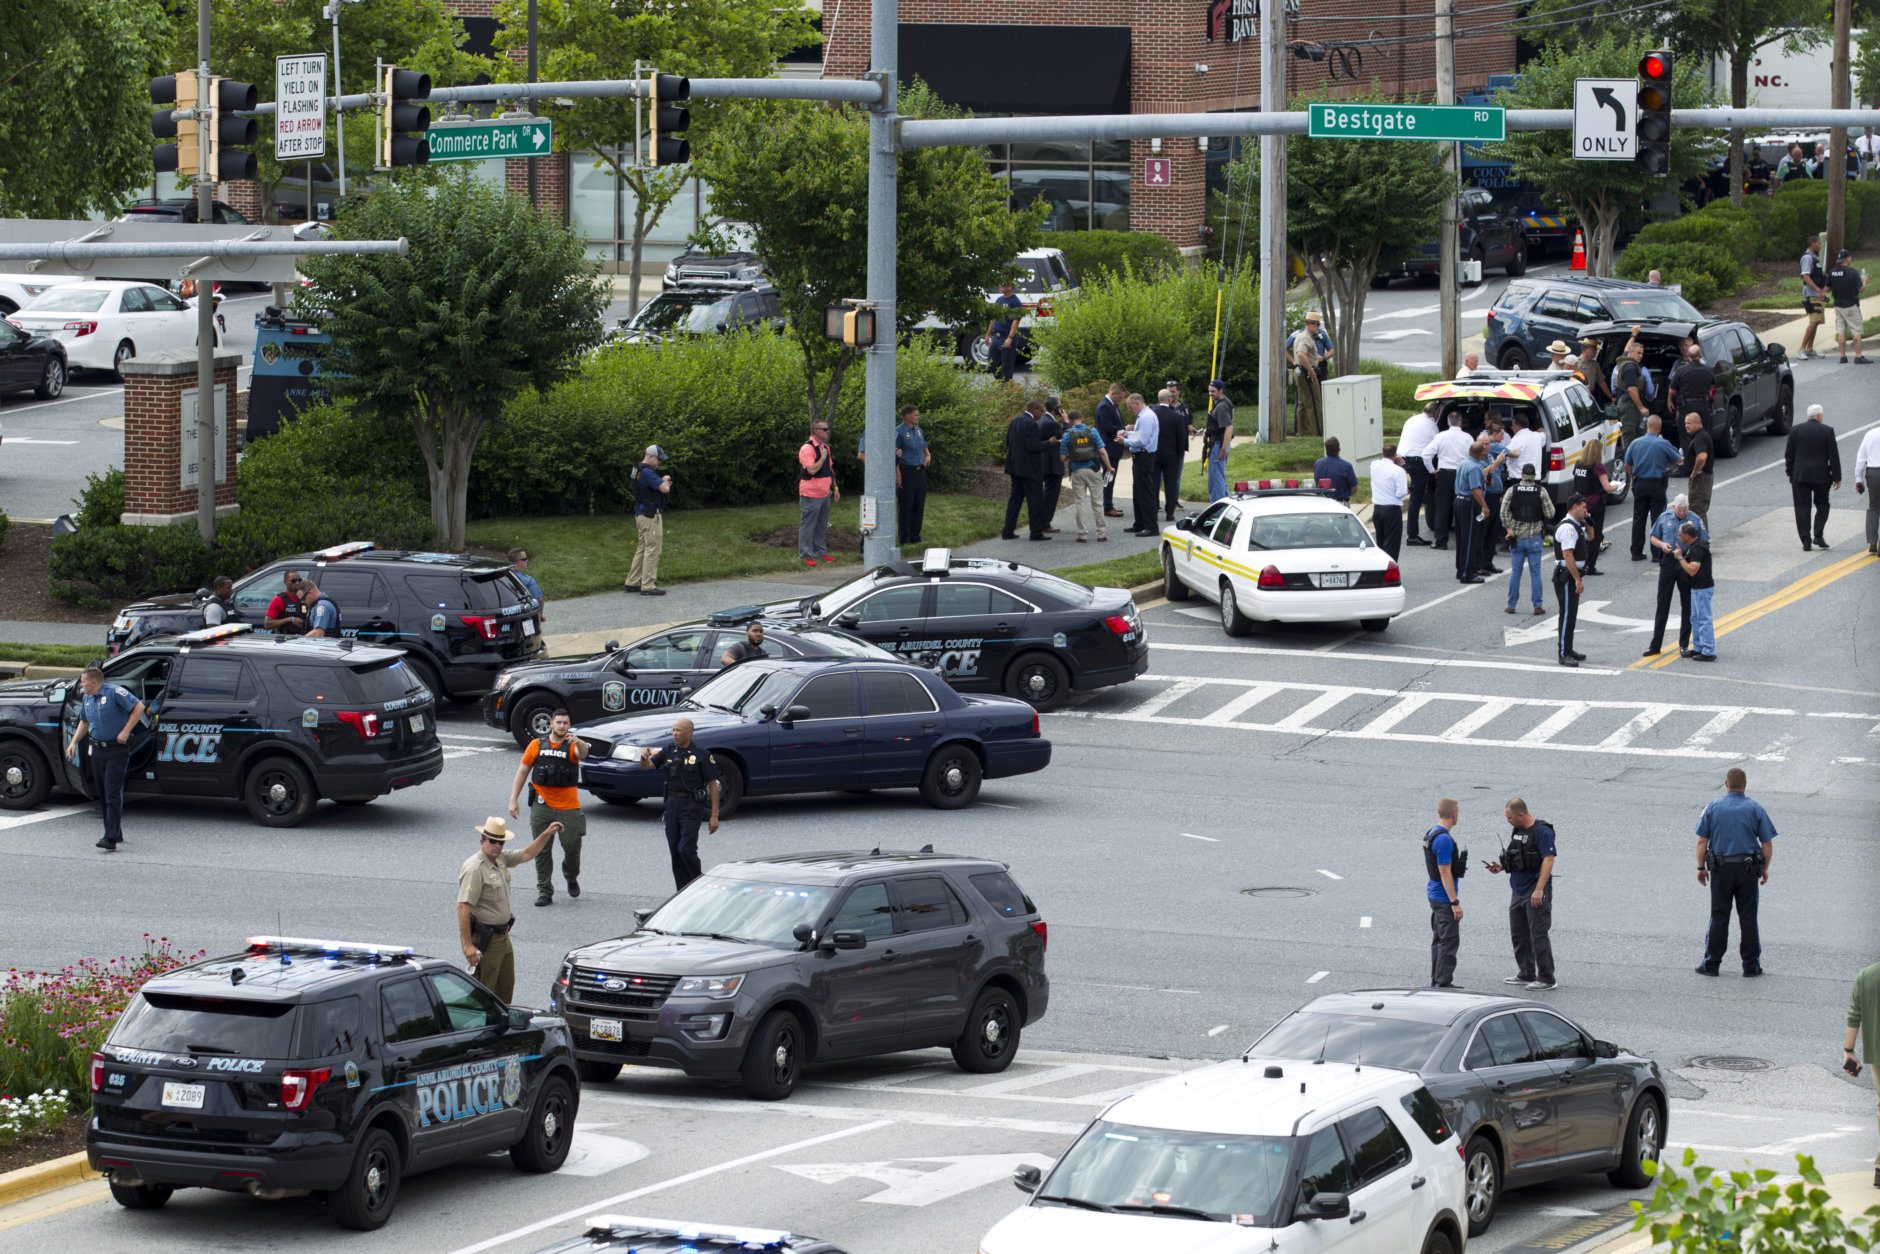 Maryland police officers block the intersection at the building entrance, after multiple people were shot at a newspaper in Annapolis, Md., Thursday, June 28, 2018. (AP Photo/Jose Luis Magana)